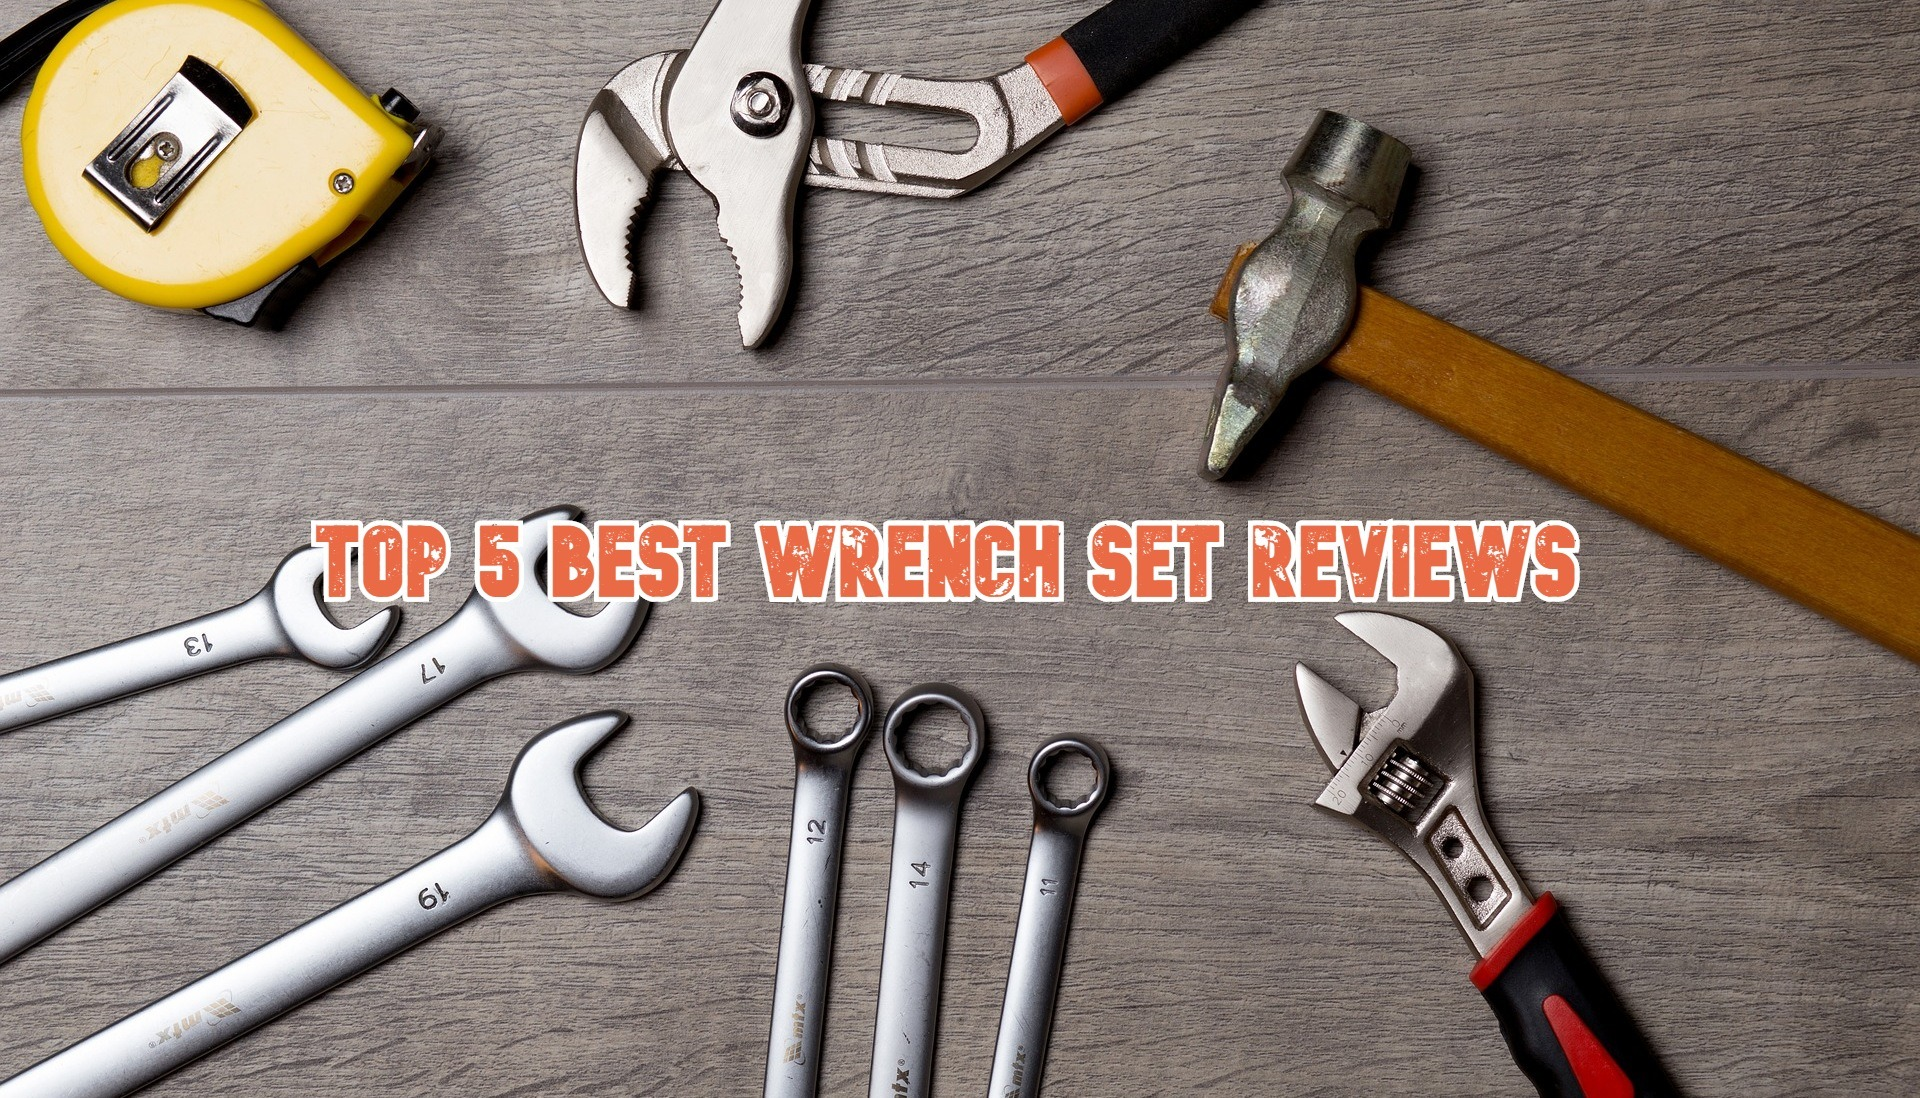 Top 5 Best Wrench Set Reviews